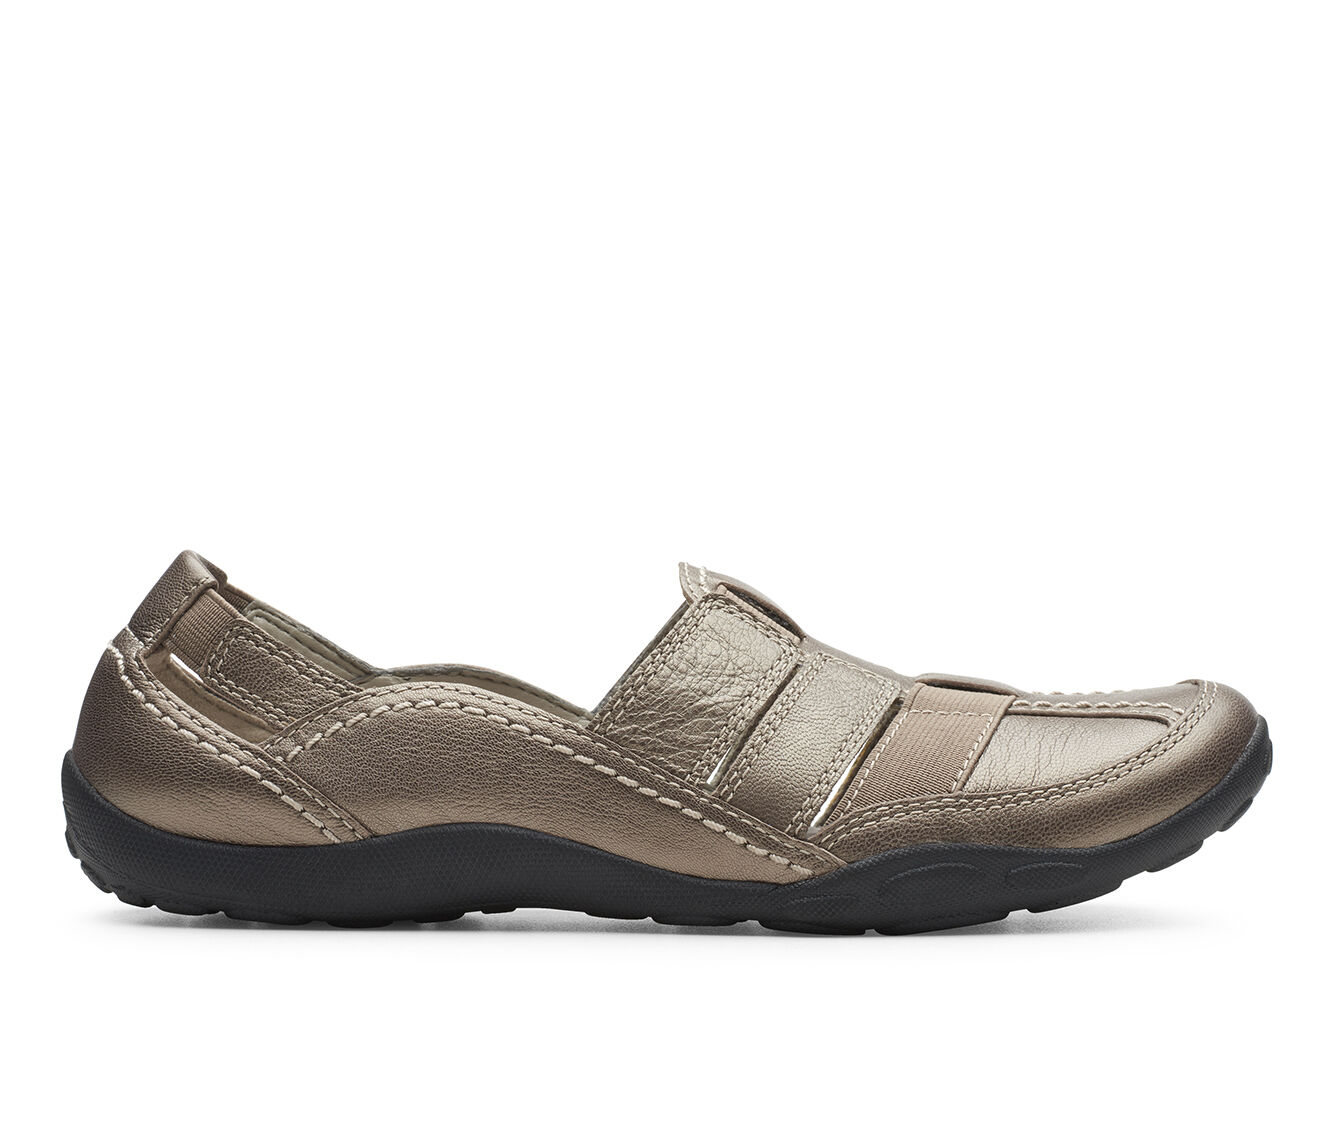 Women's Clarks Haley Stork Pewter Leather